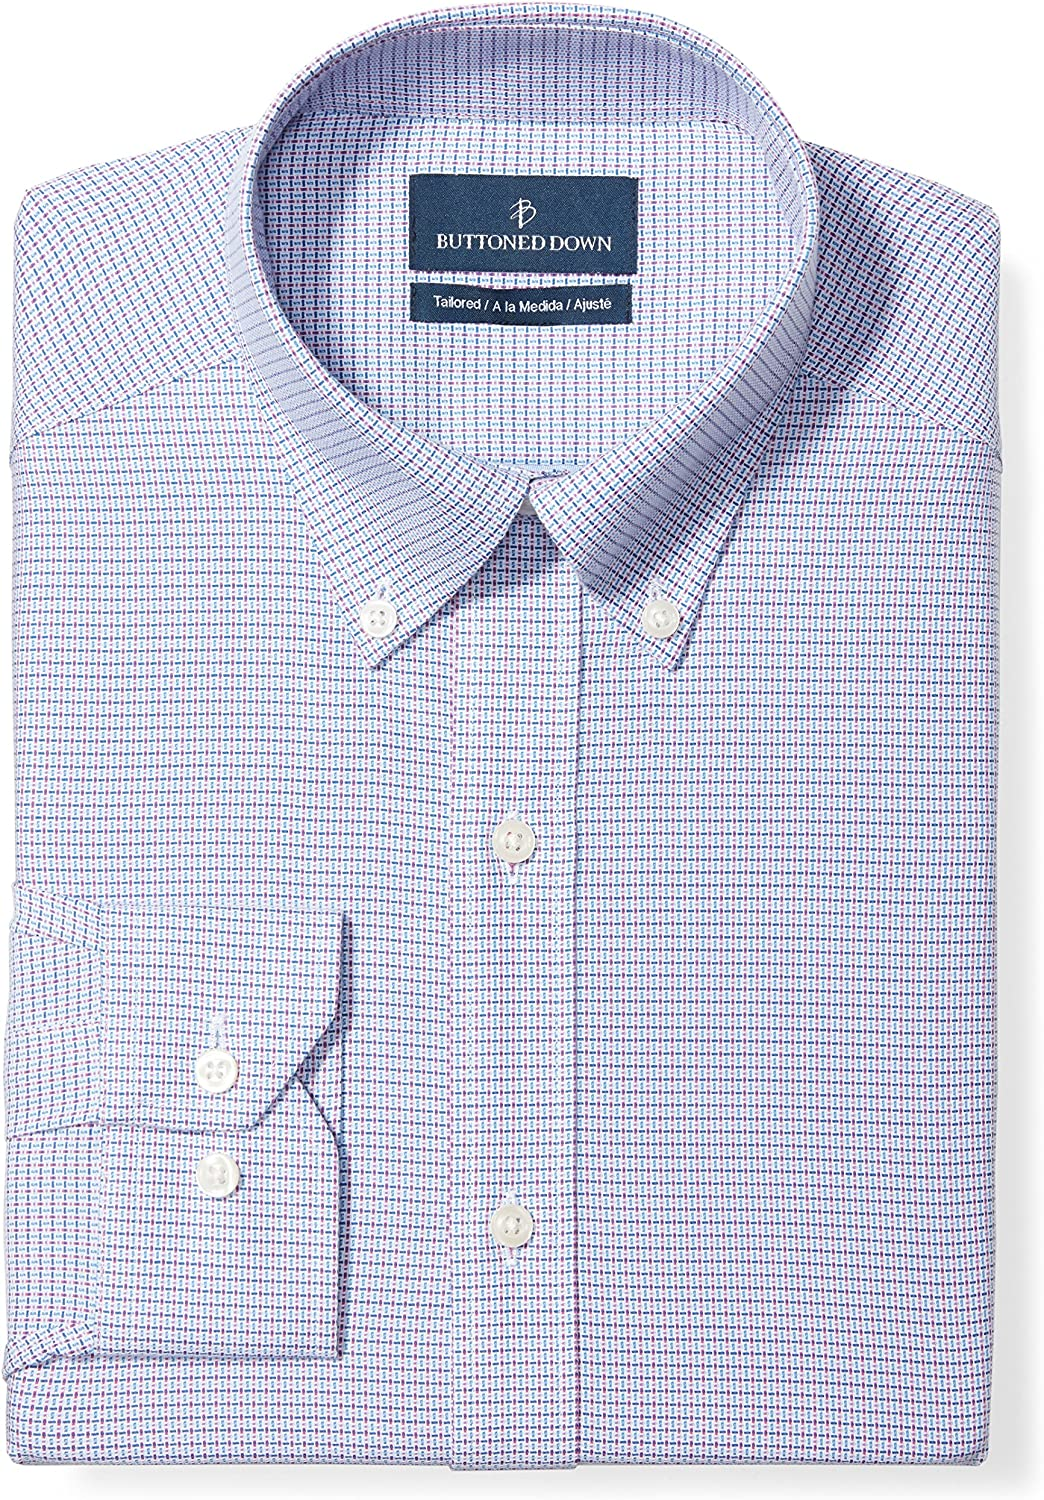 Amazon Brand - Buttoned Down Men's Tailored Fit Button Collar Pattern Dress Shirt